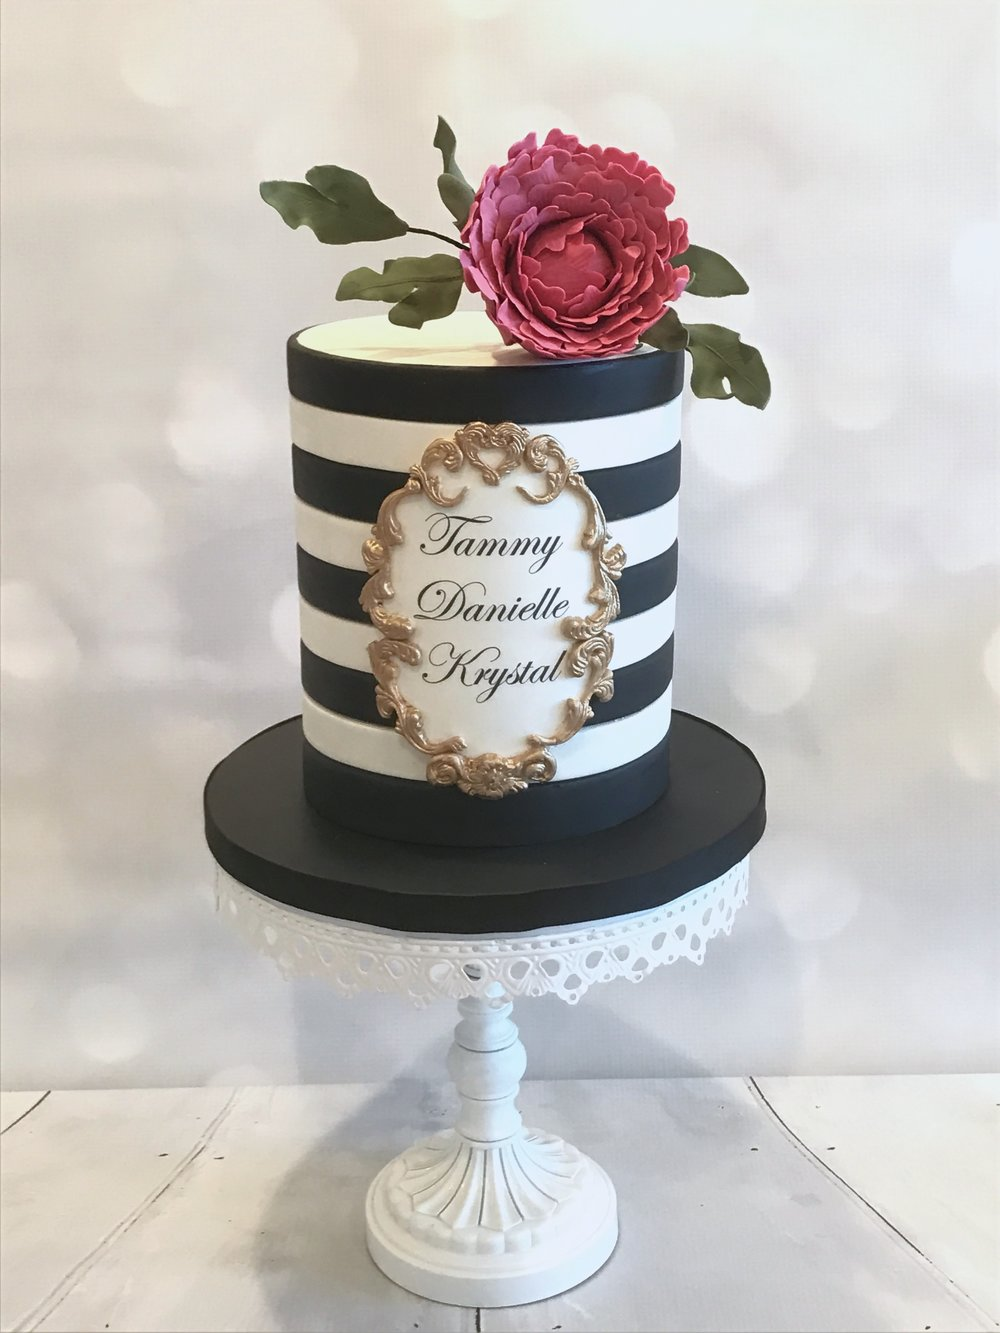 """Black & White Striped Cake with """"Ormolu"""" Plaque, topped with a Peony"""